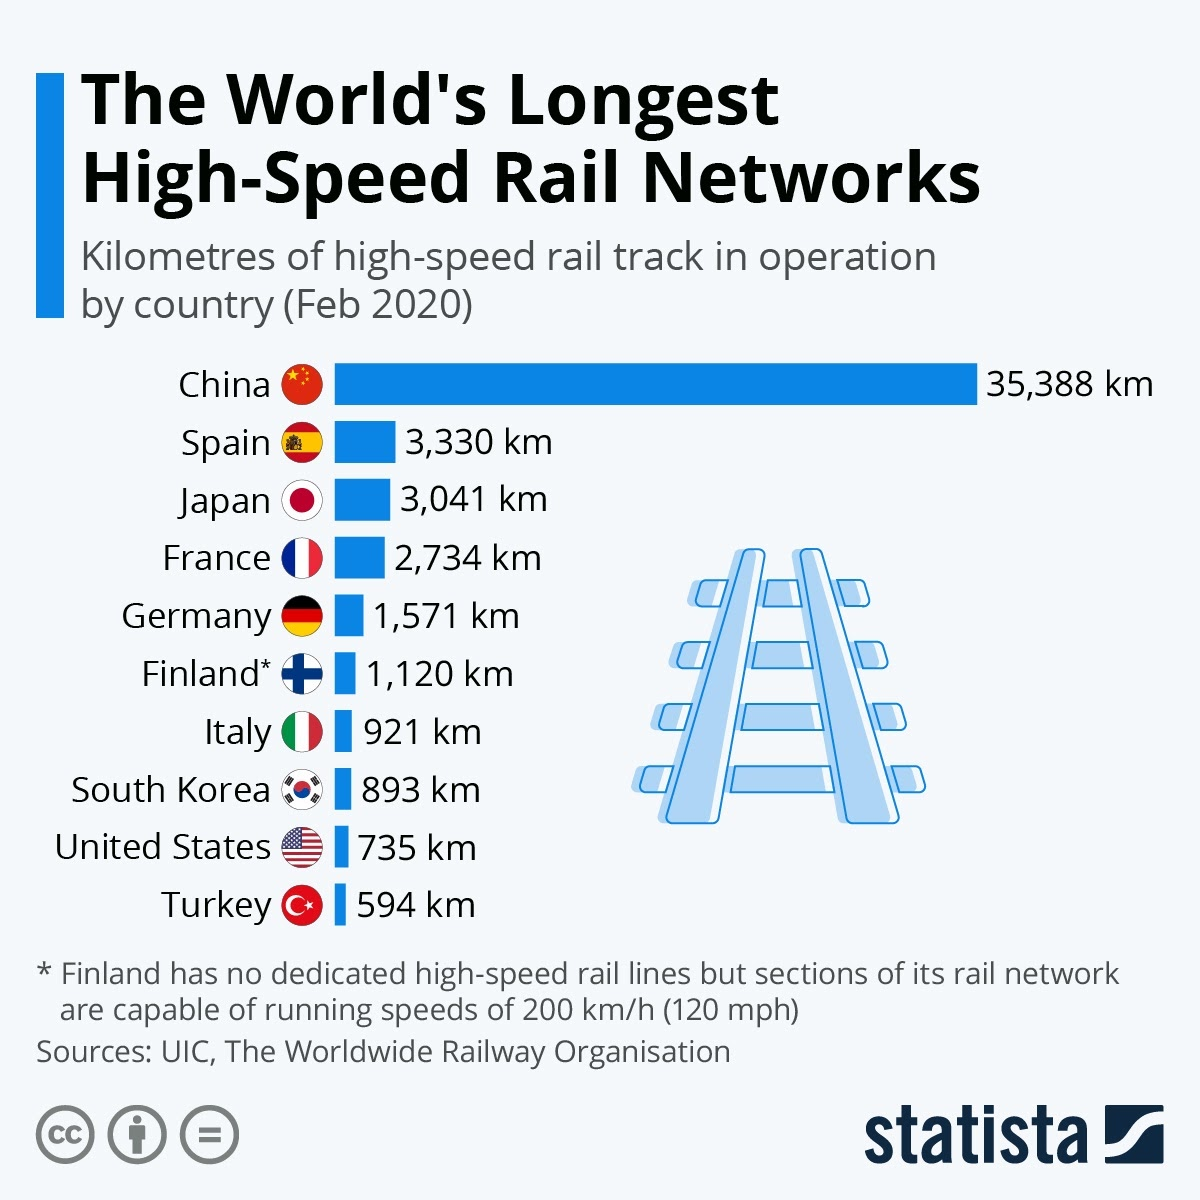 The World's Longest High-Speed Rail Networks #infographic